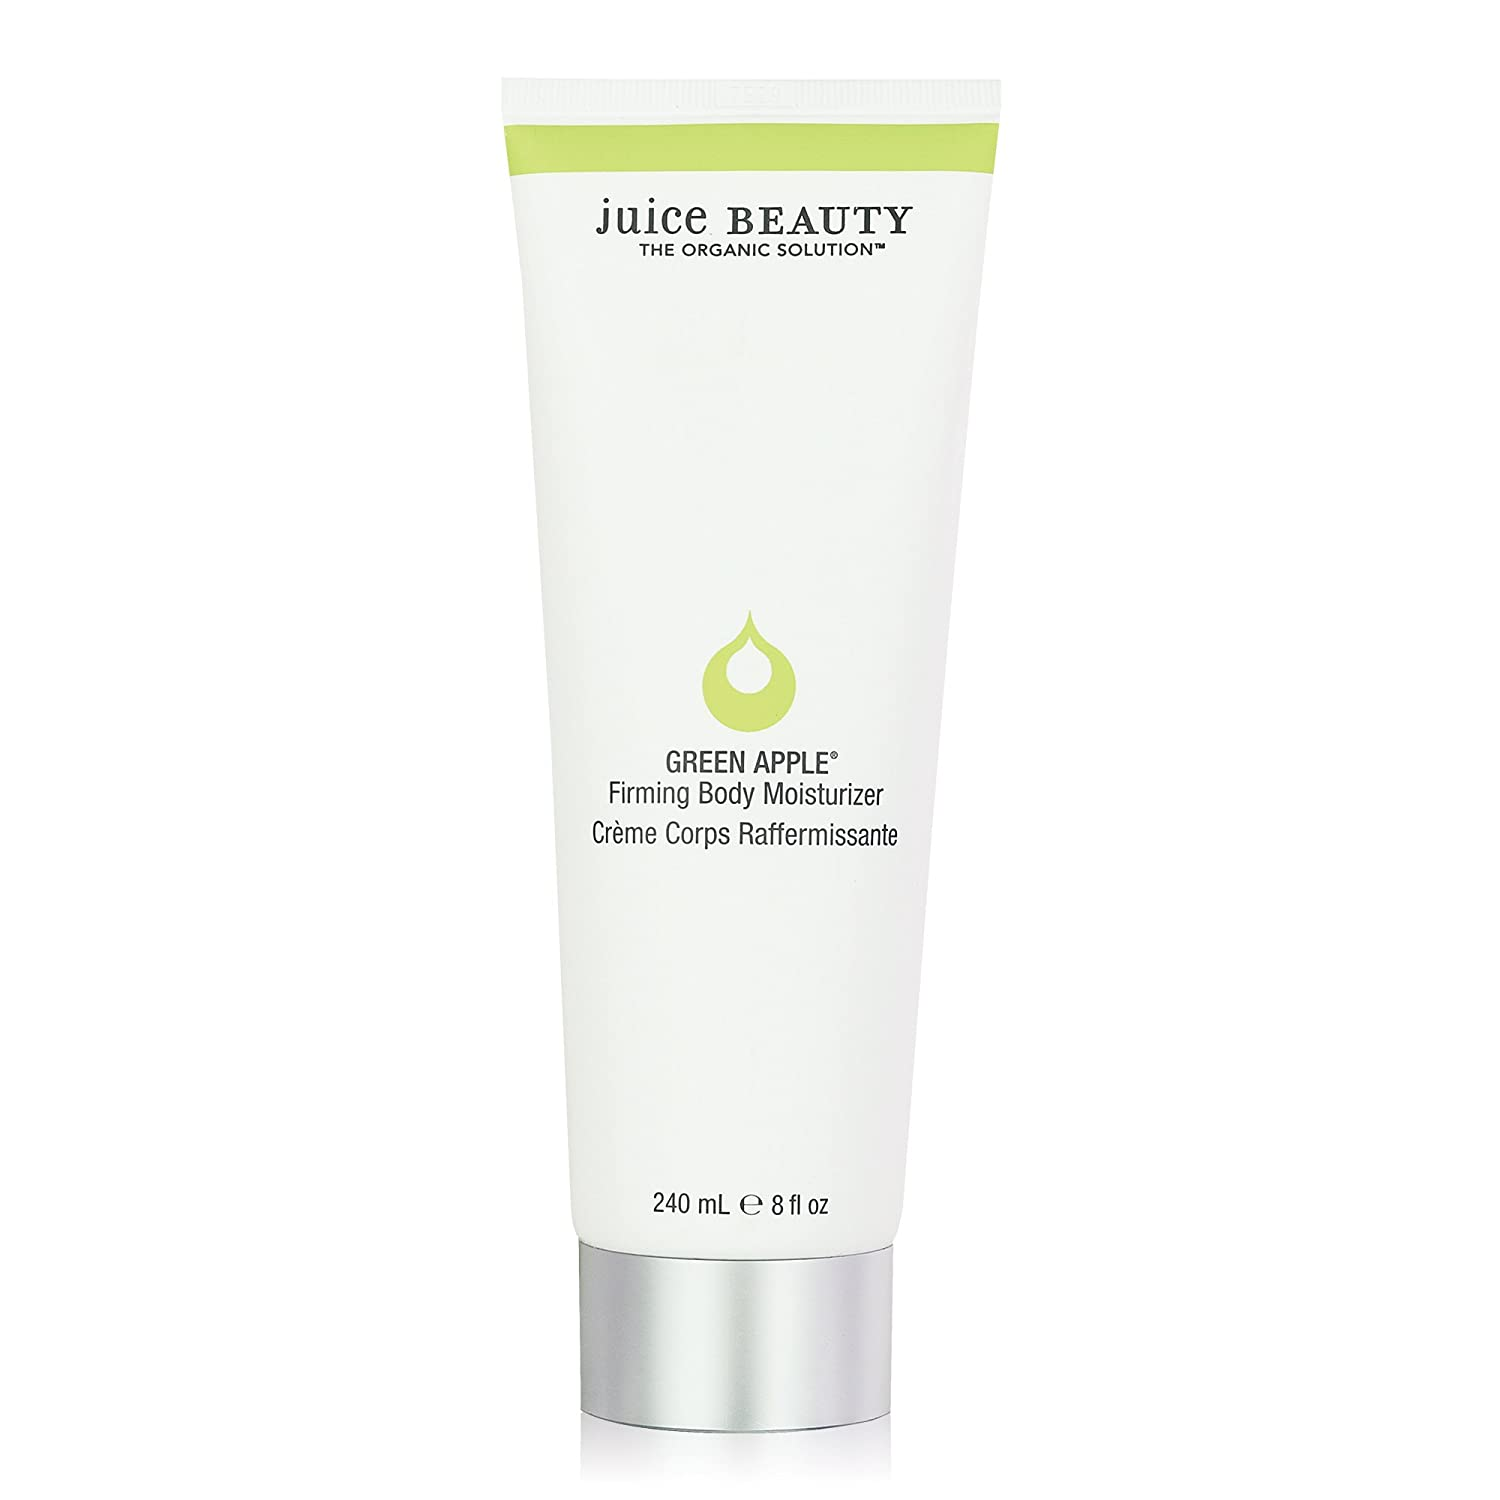 Juice Beauty Green Apple Firming Body Moisturizer, 8 fl. oz.